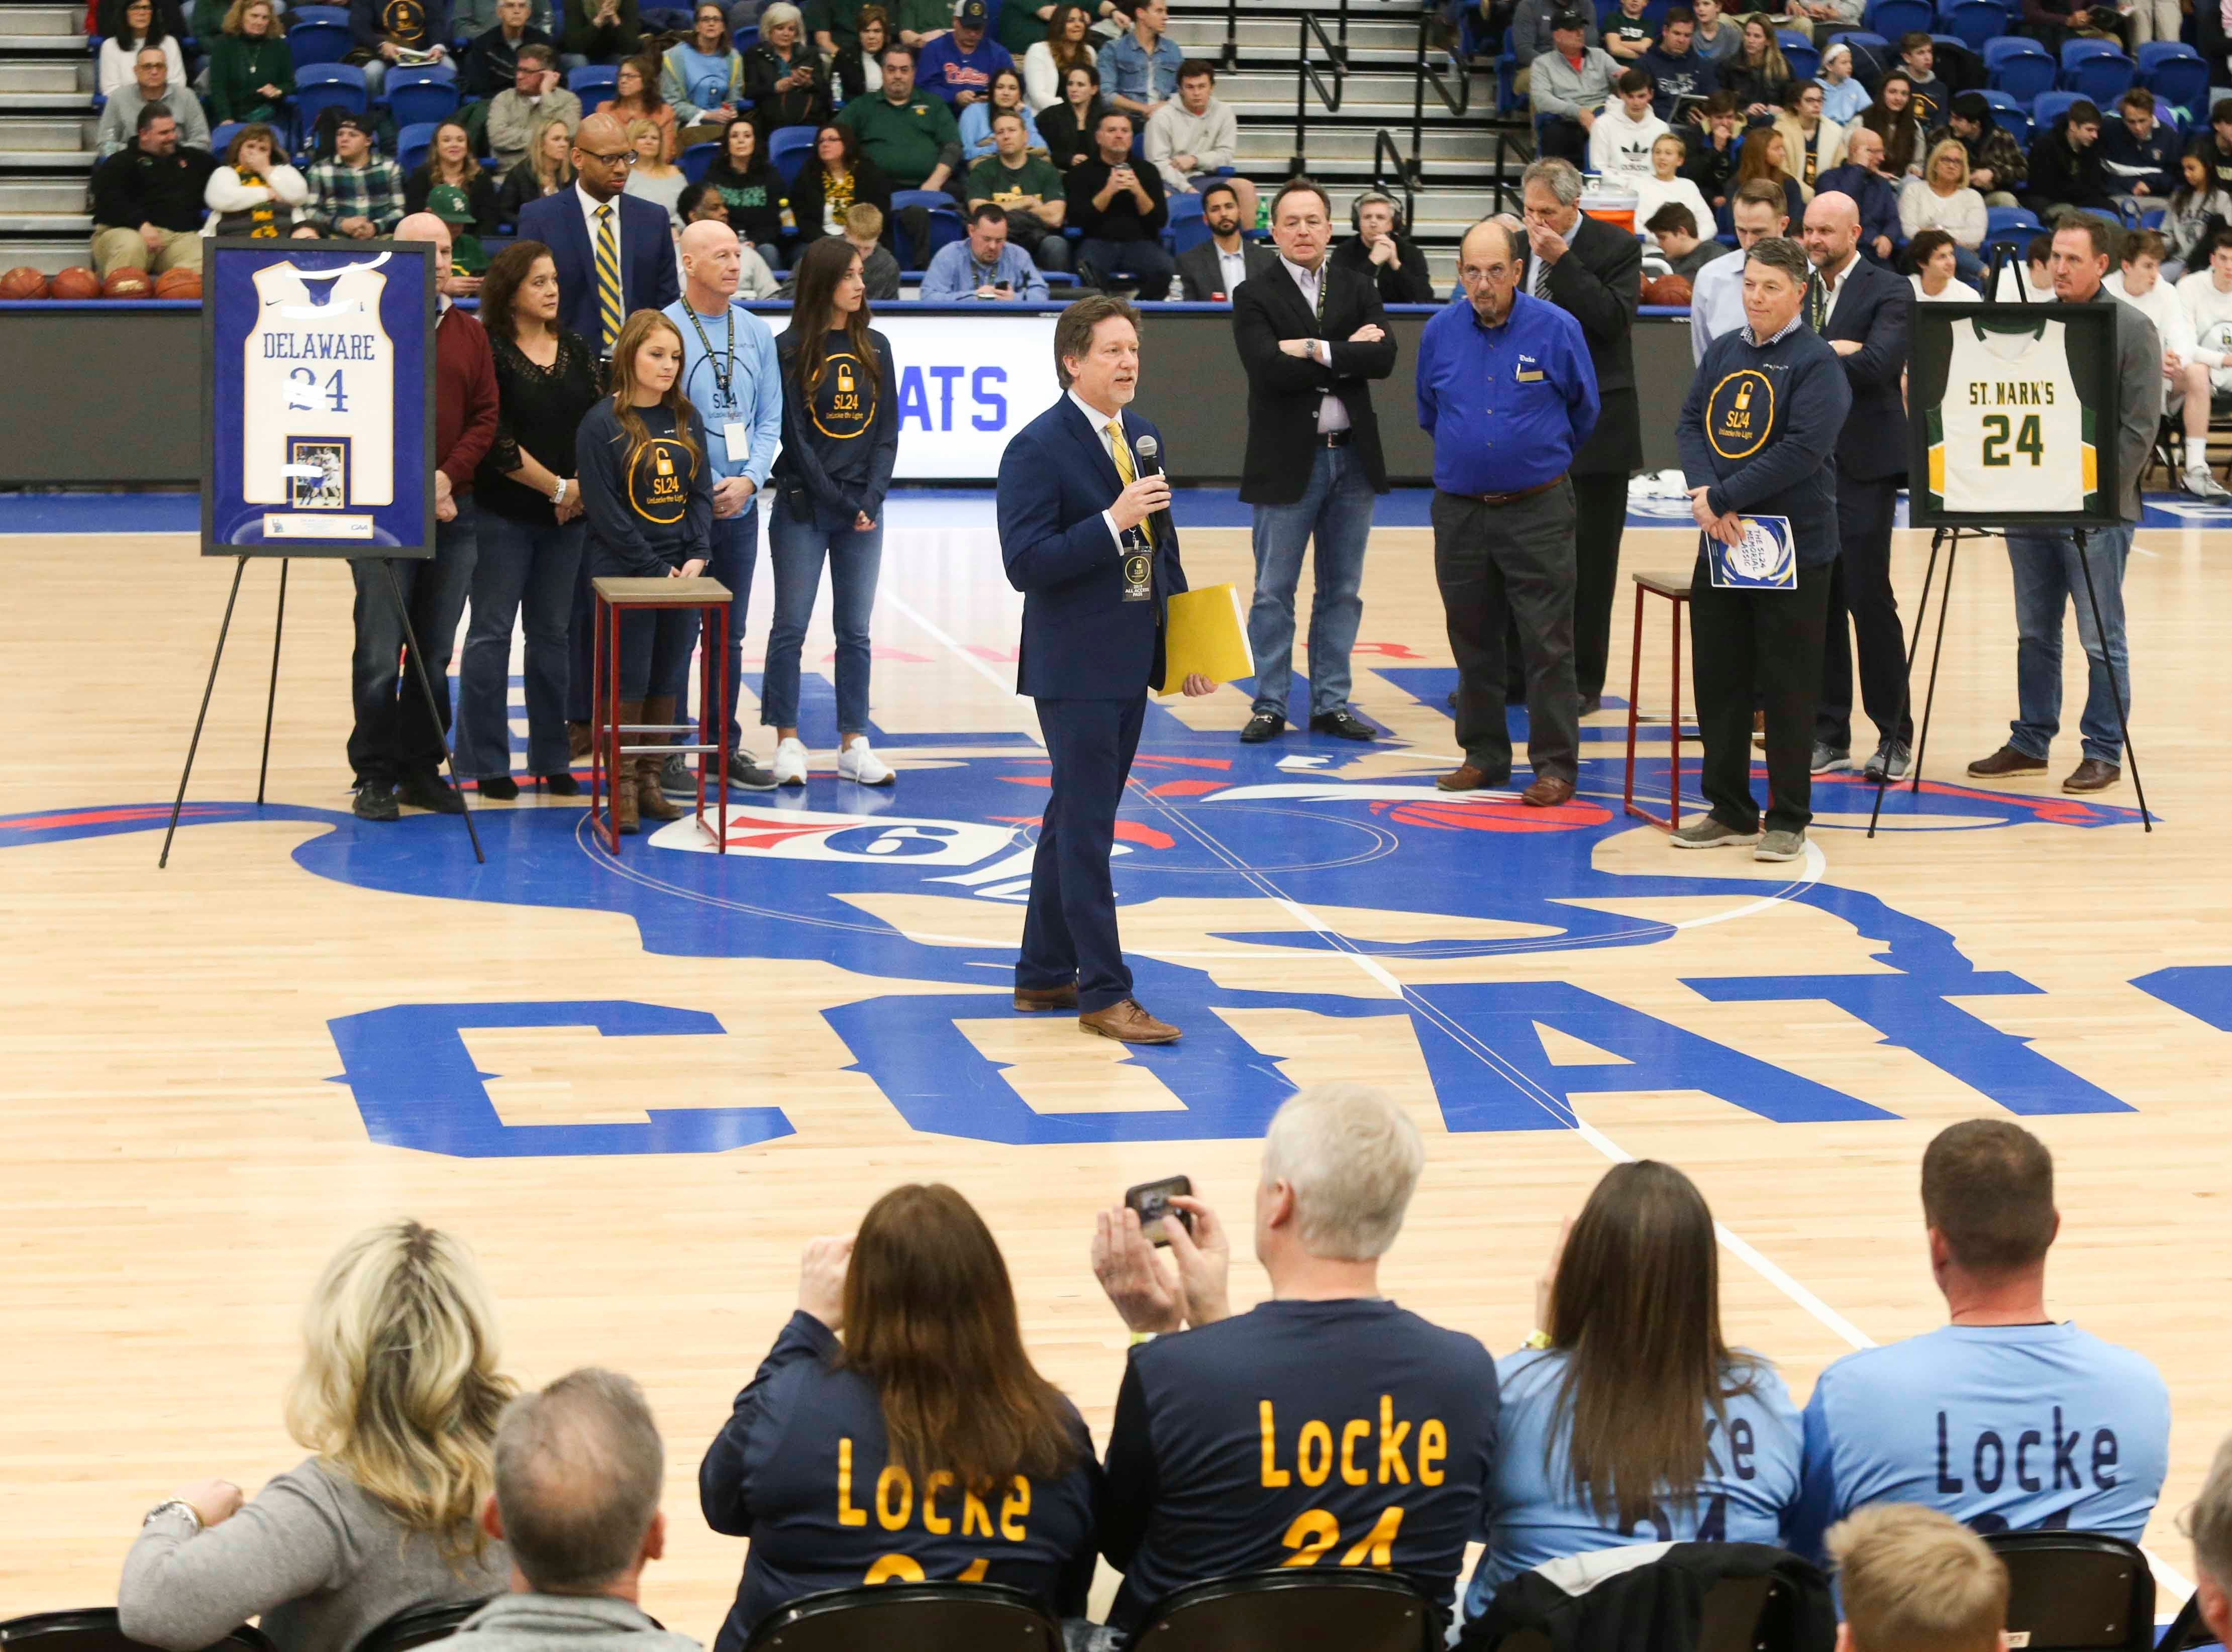 Chris Locke, father of Sean Locke, joins other supporters of the Unlocke the Light Foundation between games in the SL24 Memorial Basketball Classic at the 76ers Fieldhouse in Wilmington Friday.